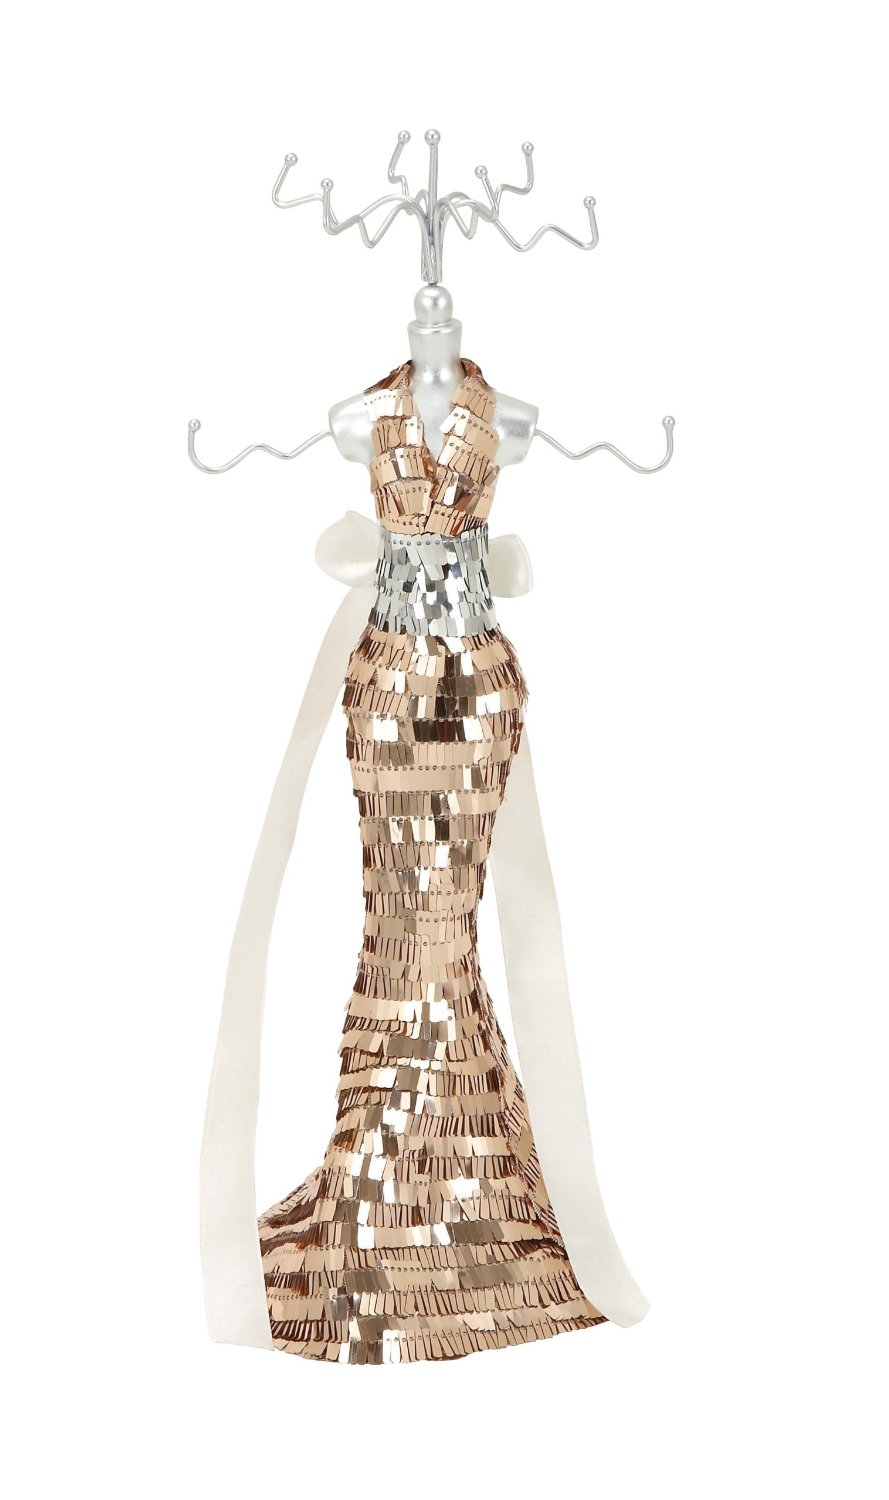 Harvey & Haley Jewelry Holder Brandishing a Gold and Silver Sequined Body